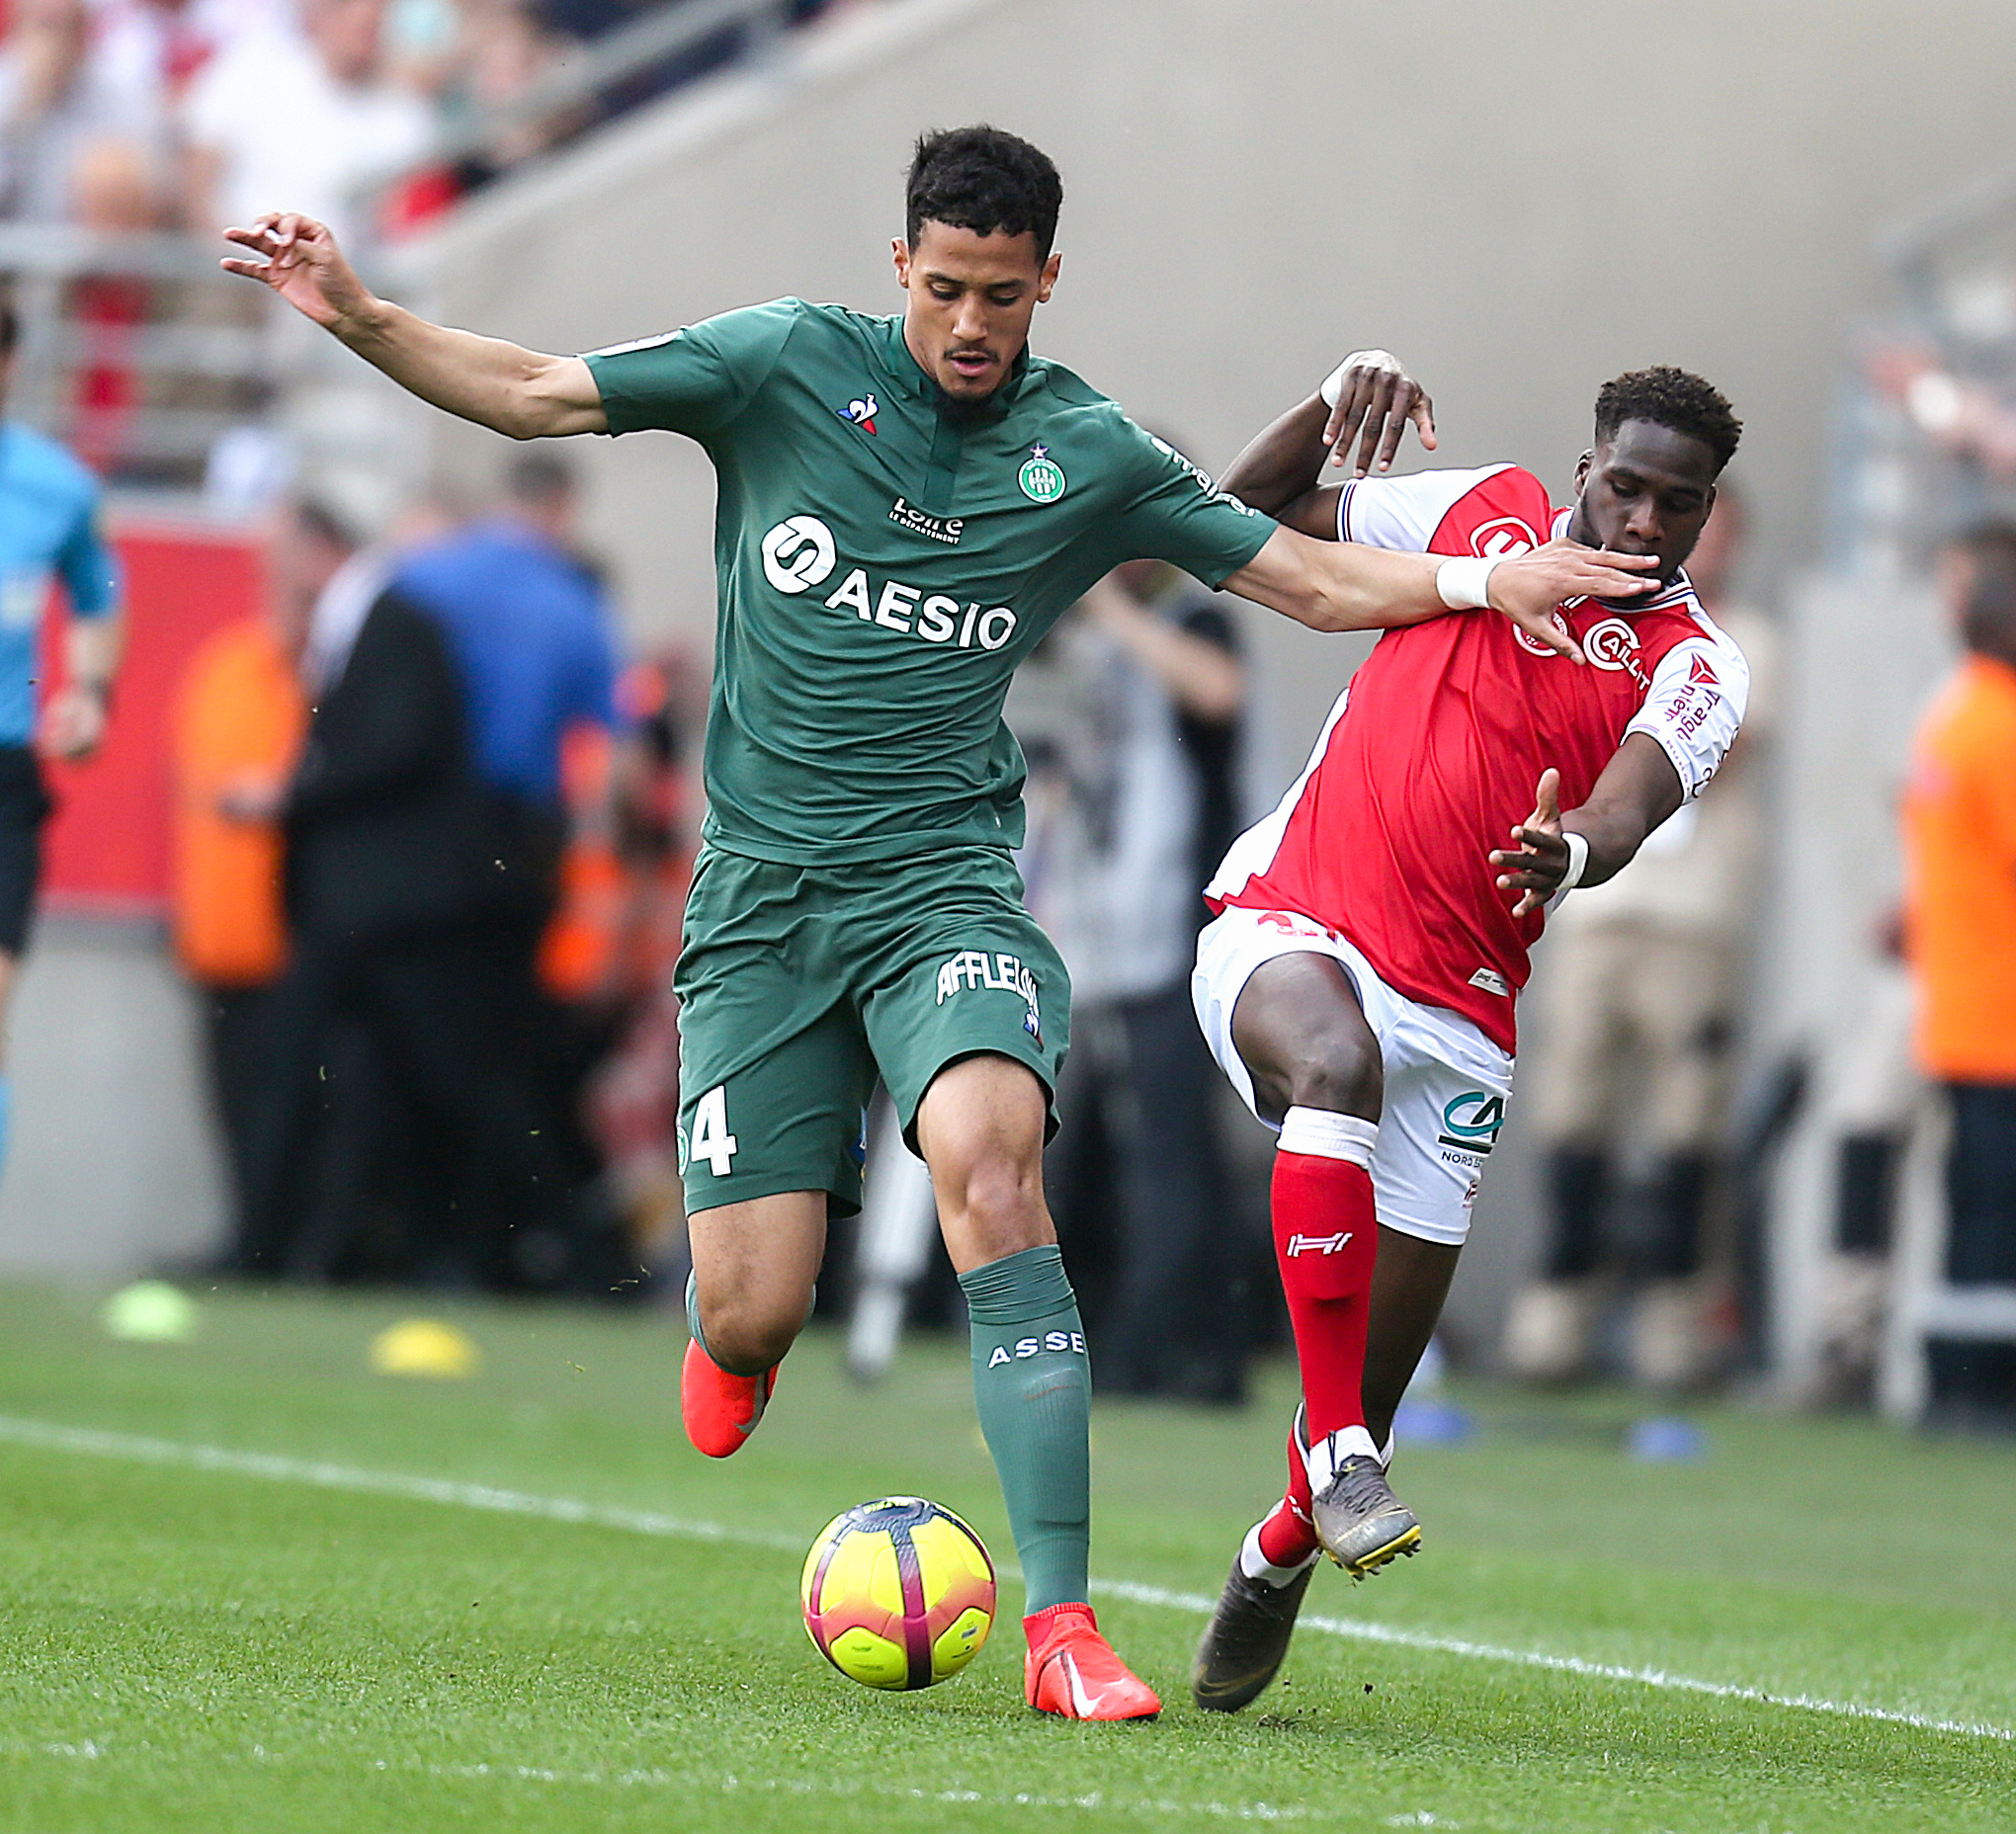 William Saliba Saint-Etienne 2018/19